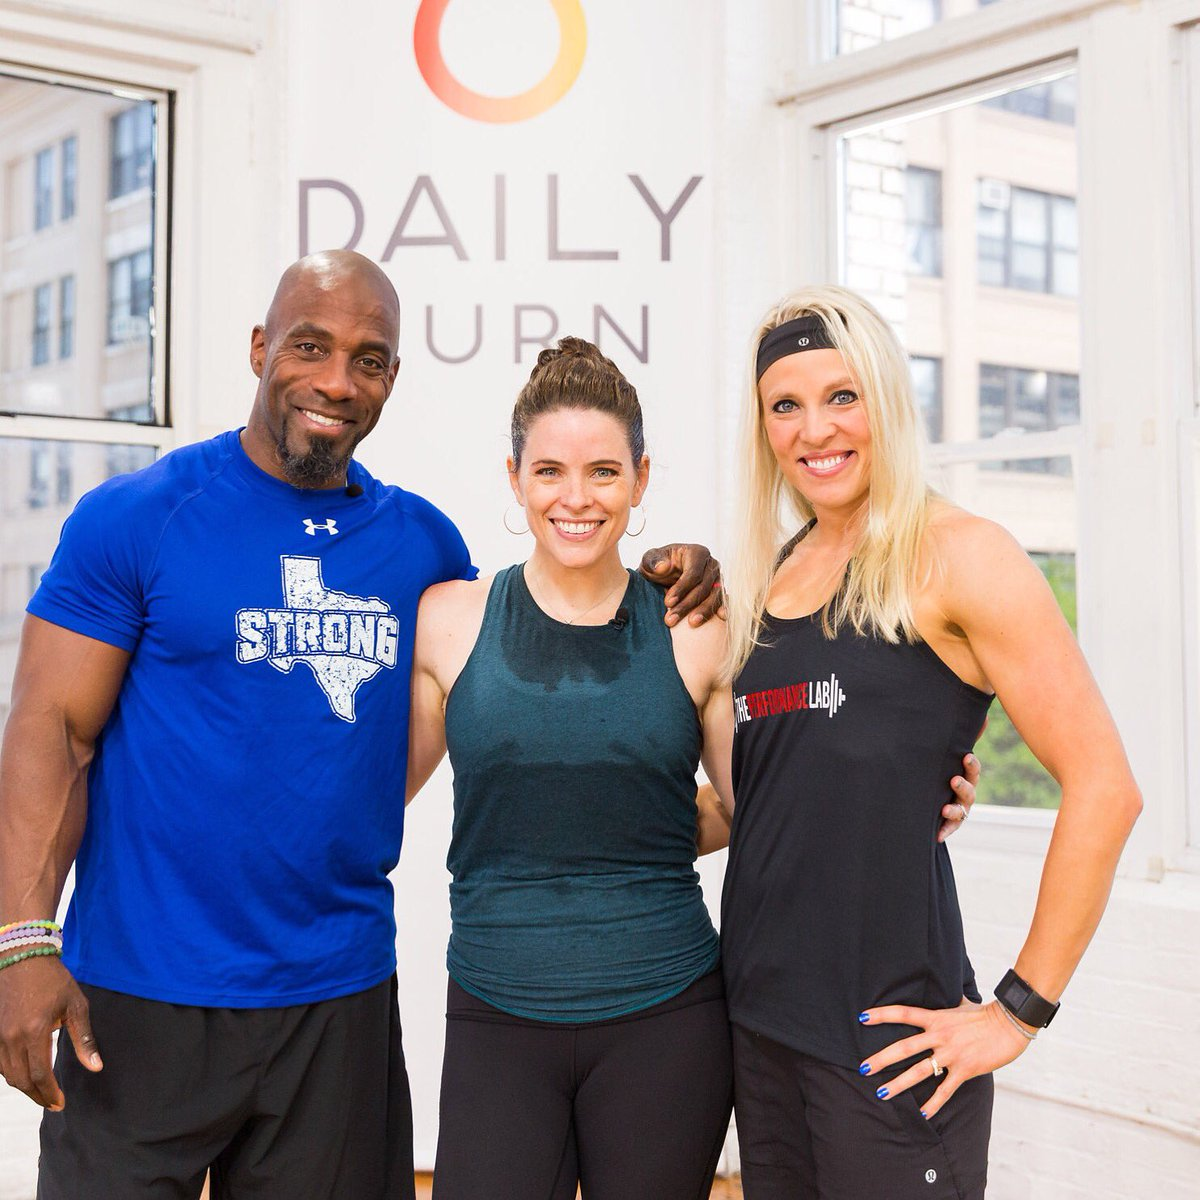 Congratulations Benny and Jill! Great new ways to get in shape! Check out the https://t.co/RNSWmLbKVt /STRONG https://t.co/98S0m1K3Kq